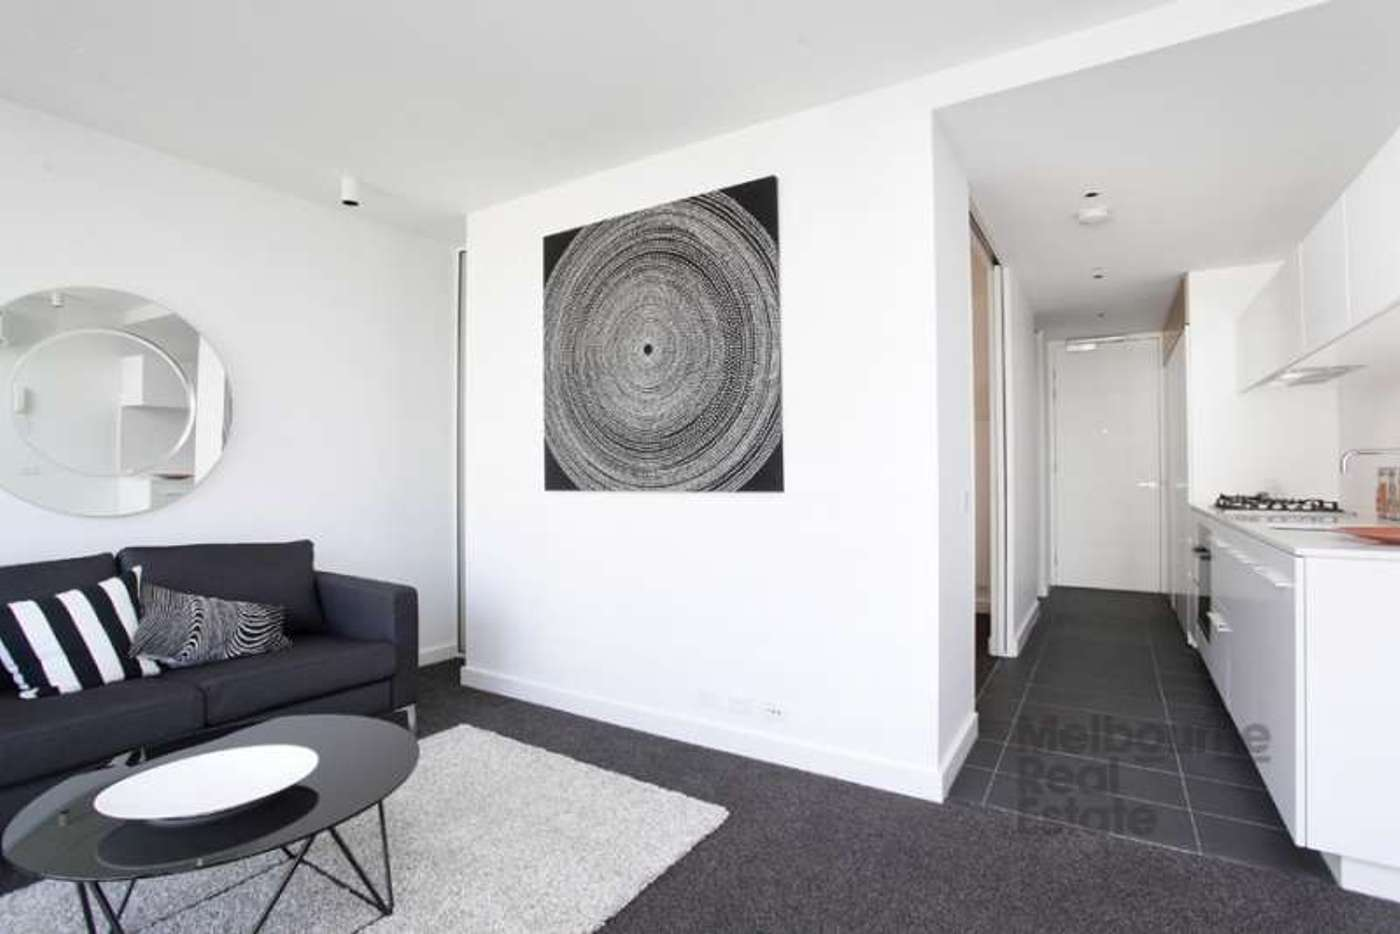 Main view of Homely apartment listing, 1315/39 Coventry Street, Southbank VIC 3006